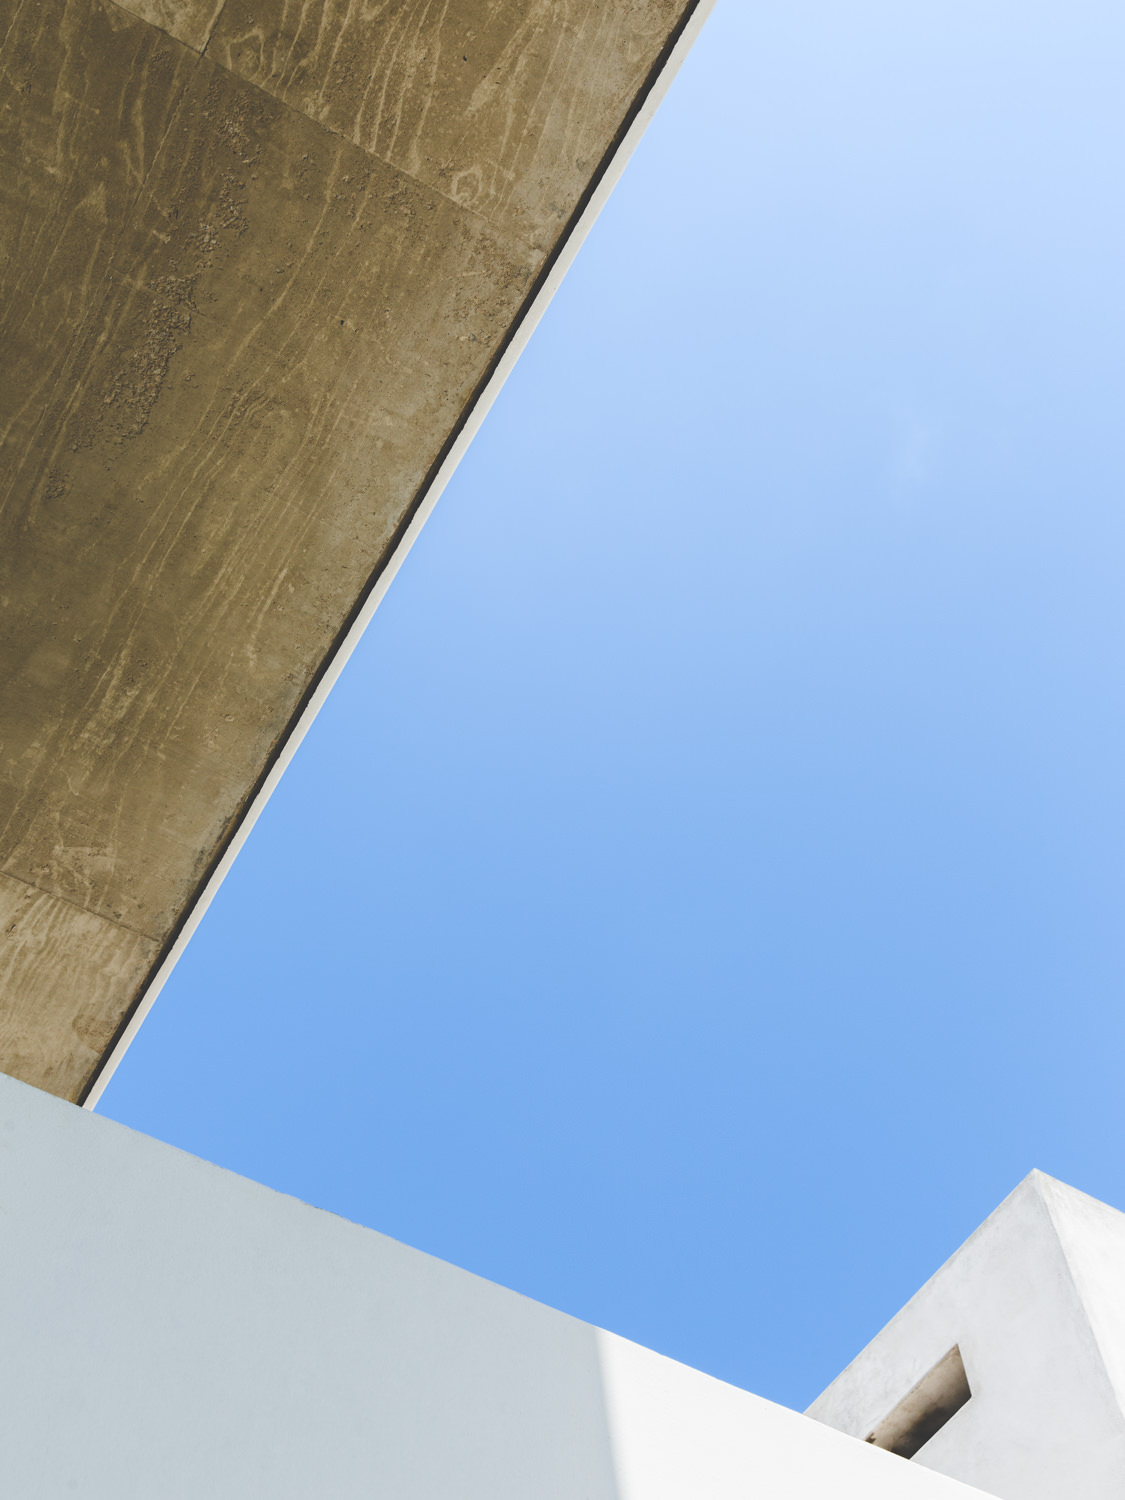 tim gerges commercial advertising photographer architecture capetown-7143.jpg